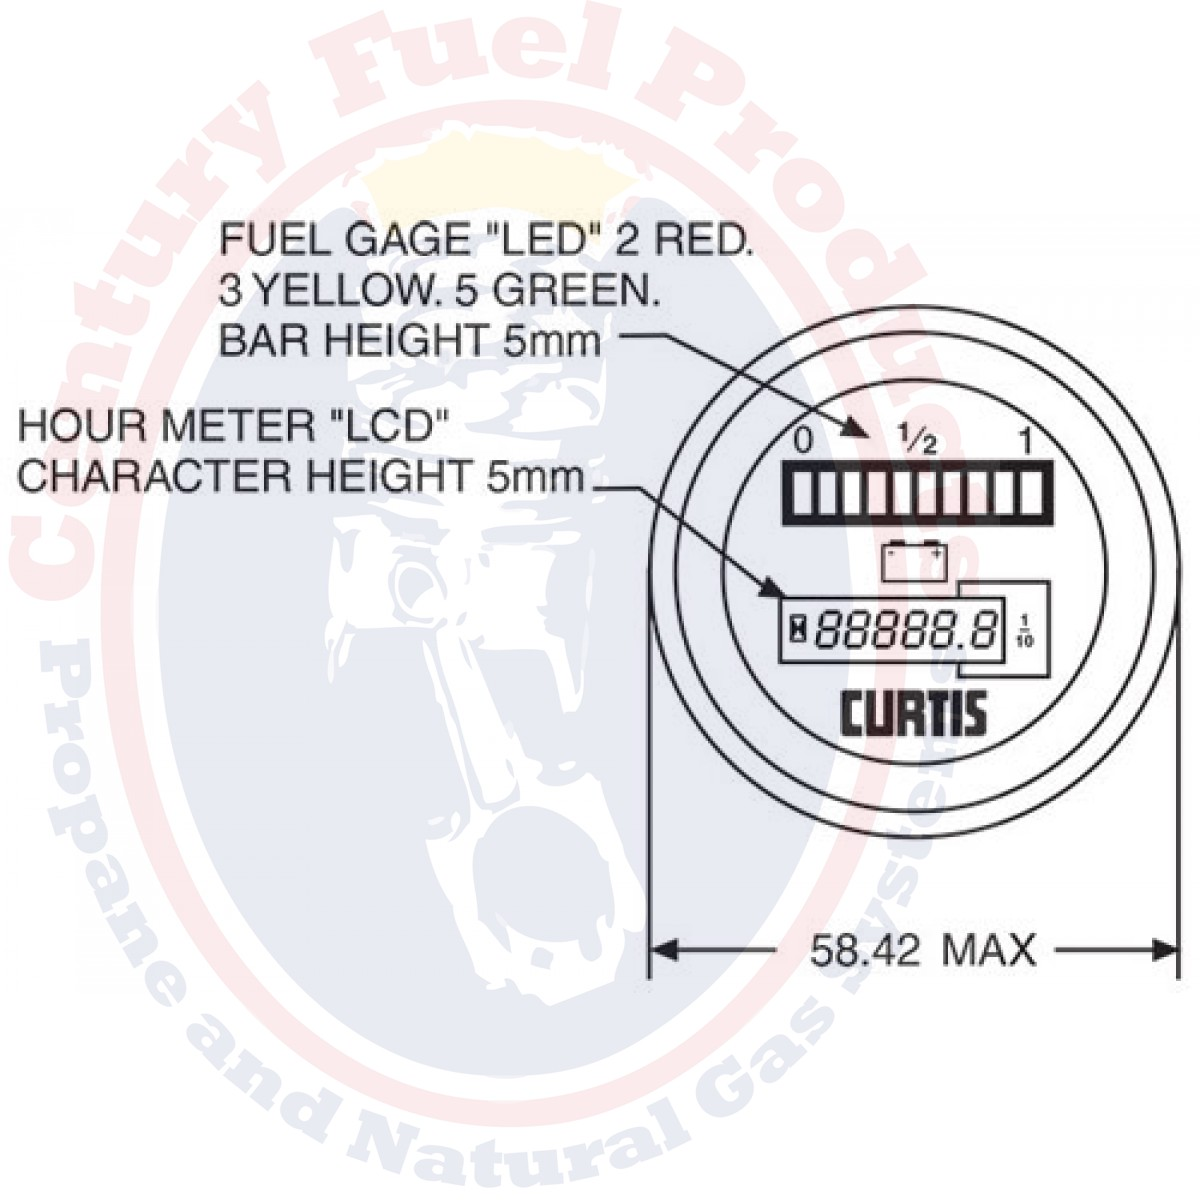 Curtis Meters Wiring Diagrams Another Blog About Diagram Amtrol 870 256 Raymond Forklift Bdi Hour Meter 870256 802rb2436bn Gauge Rh Centuryfuelproducts Com